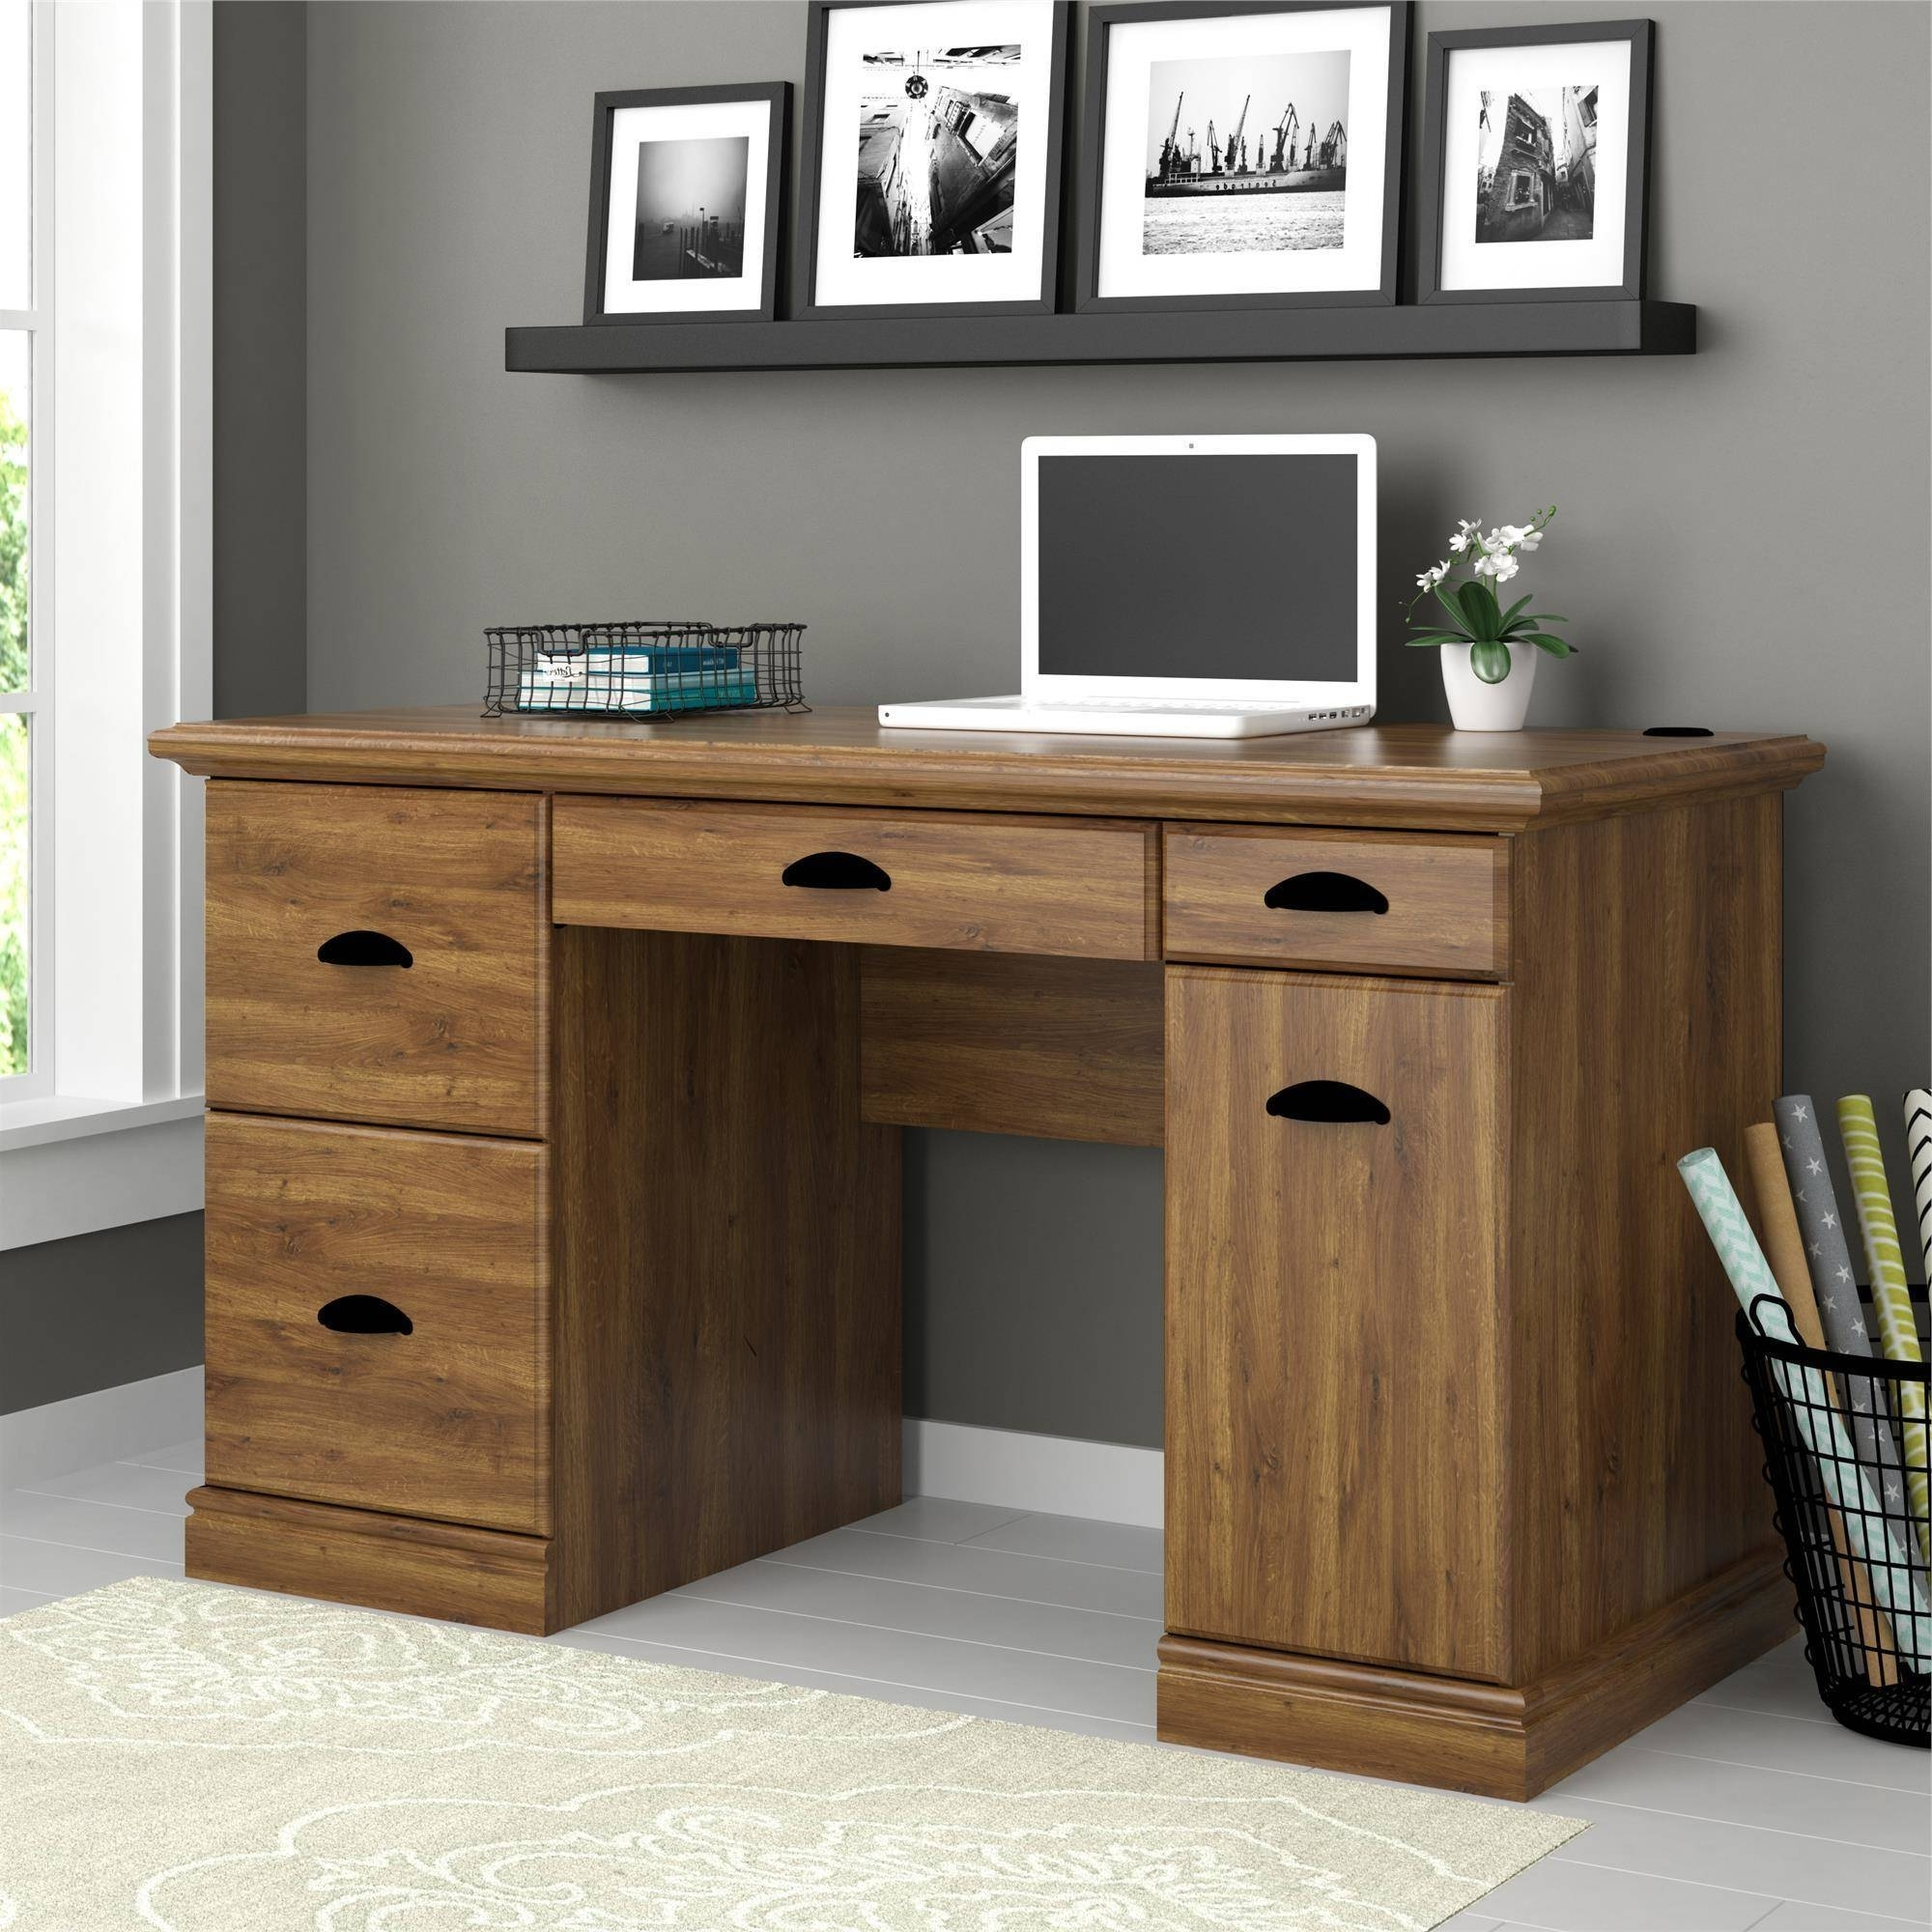 Better Homes And Gardens Computer Desk, Brown Oak – Walmart With Best And Newest Brown Computer Desks (View 2 of 20)